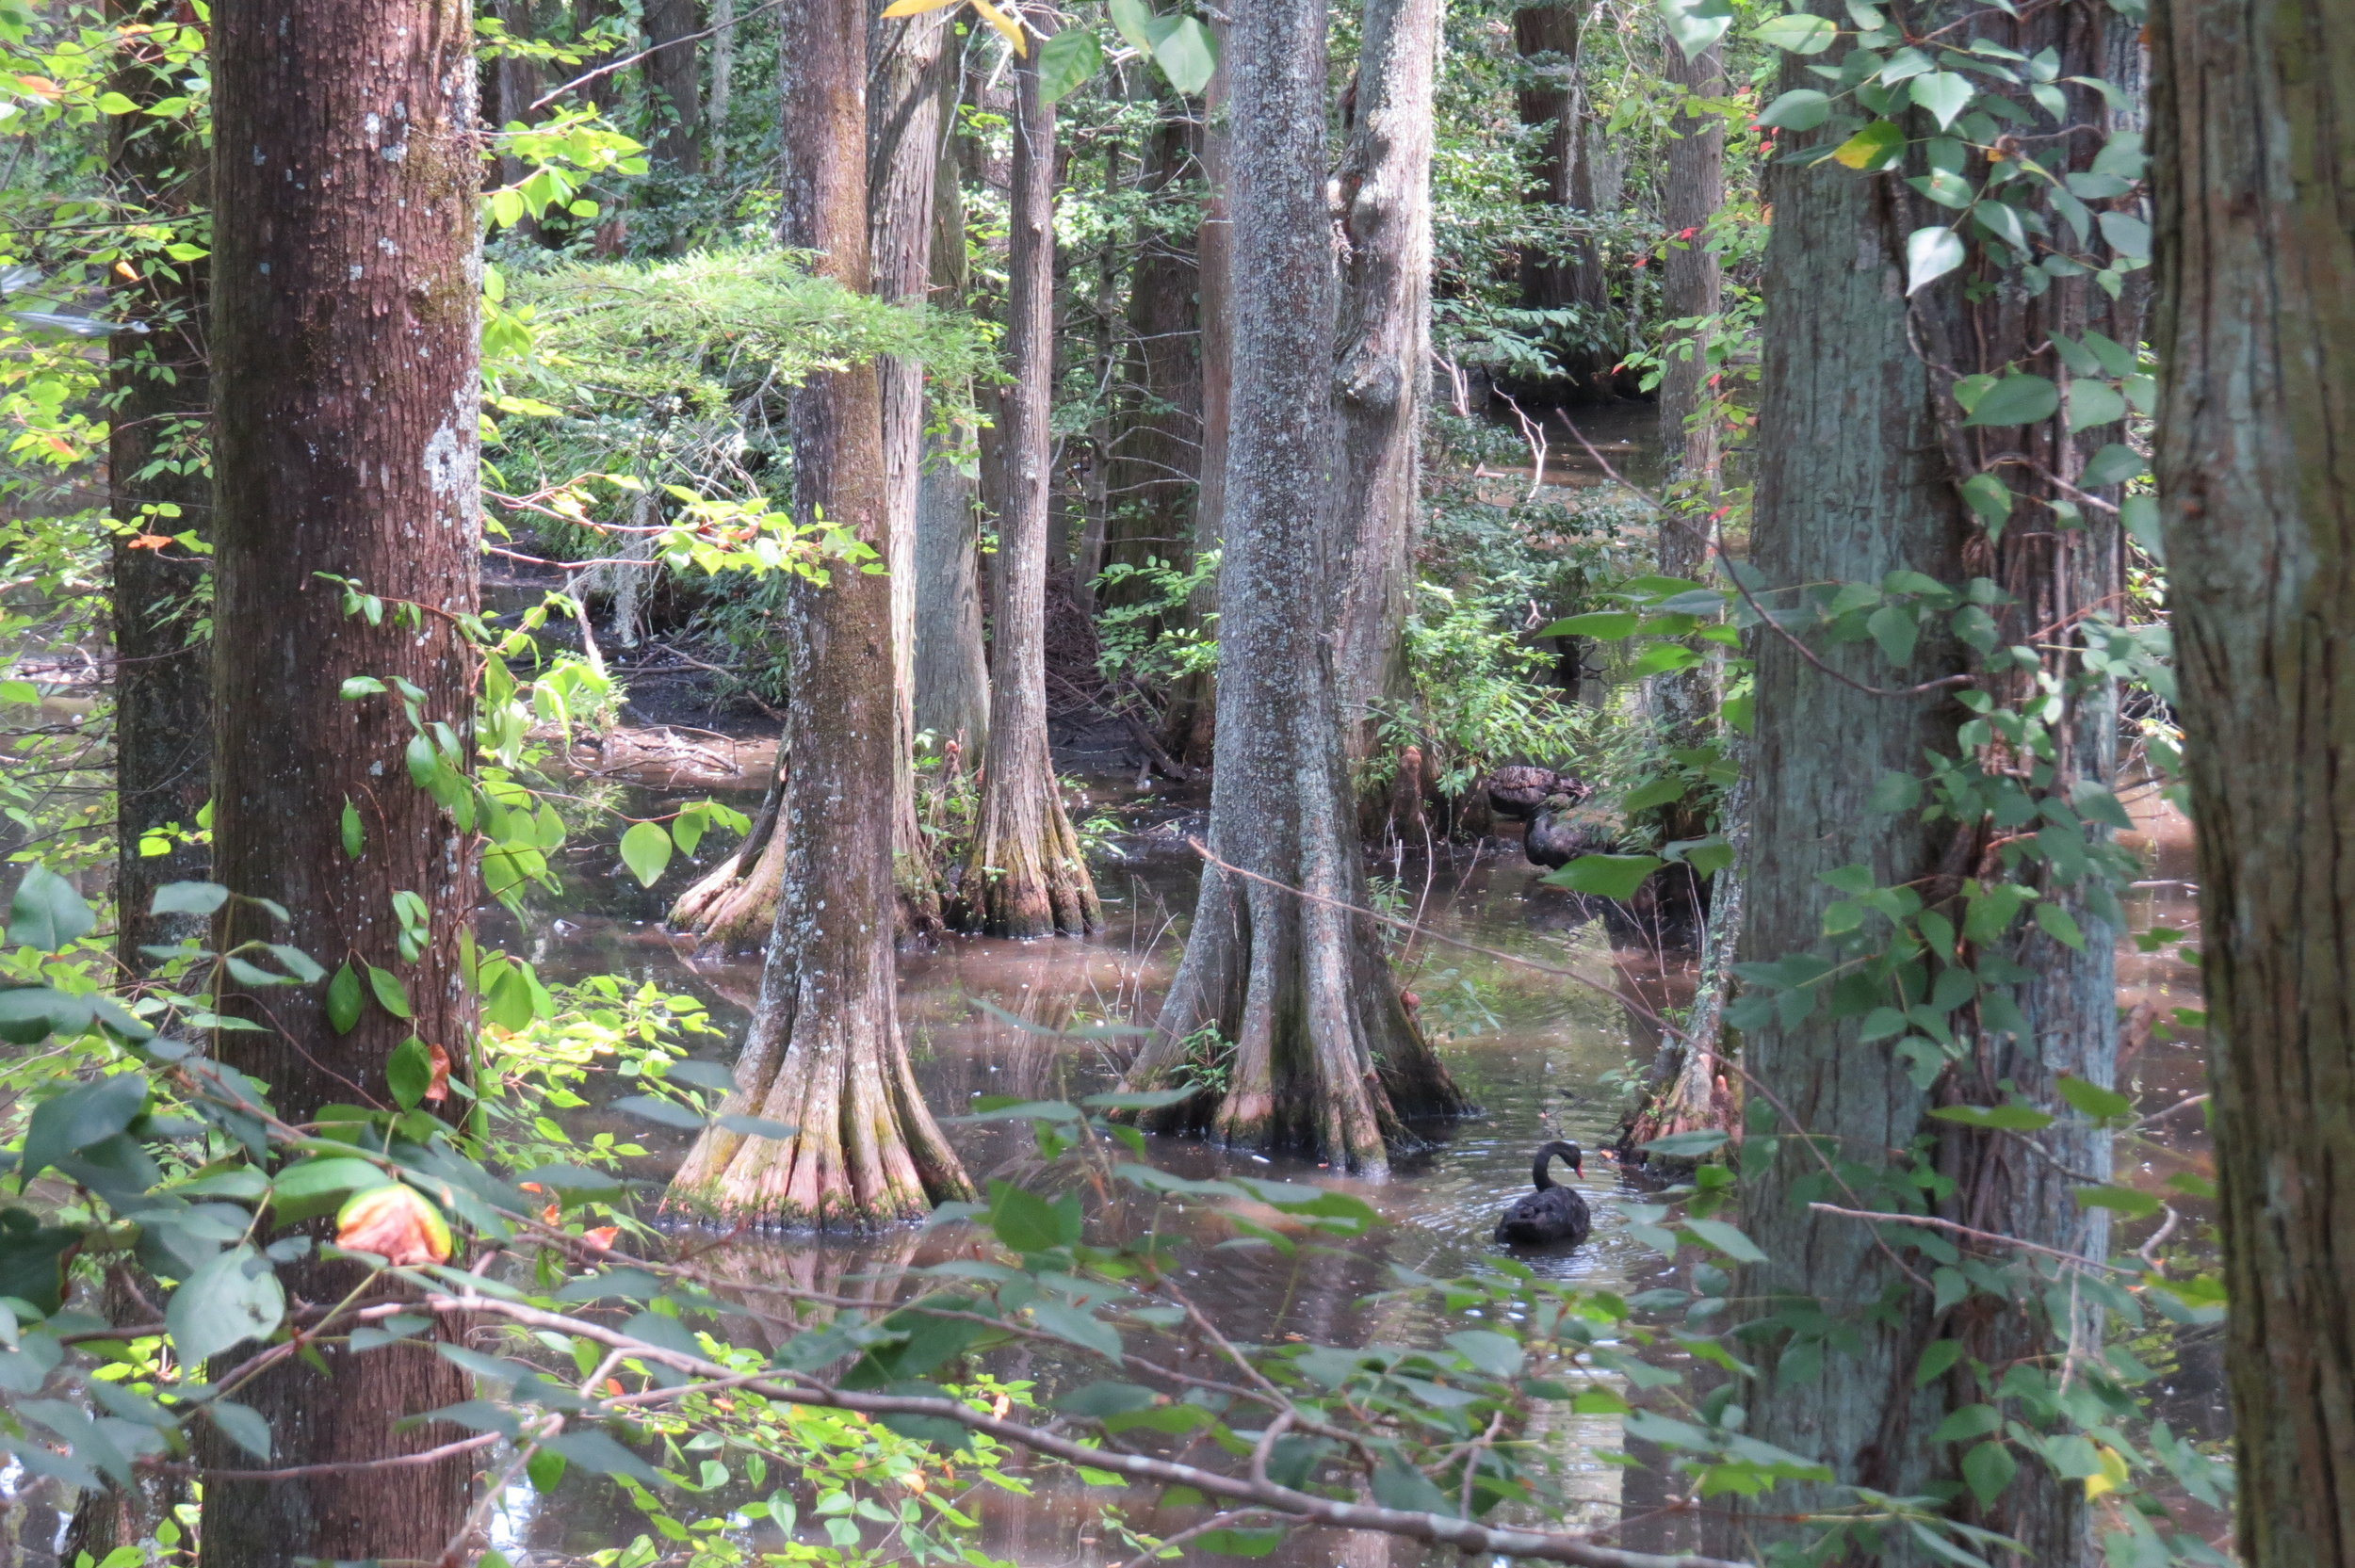 A cypress swamp provides a protected haven for the swans.